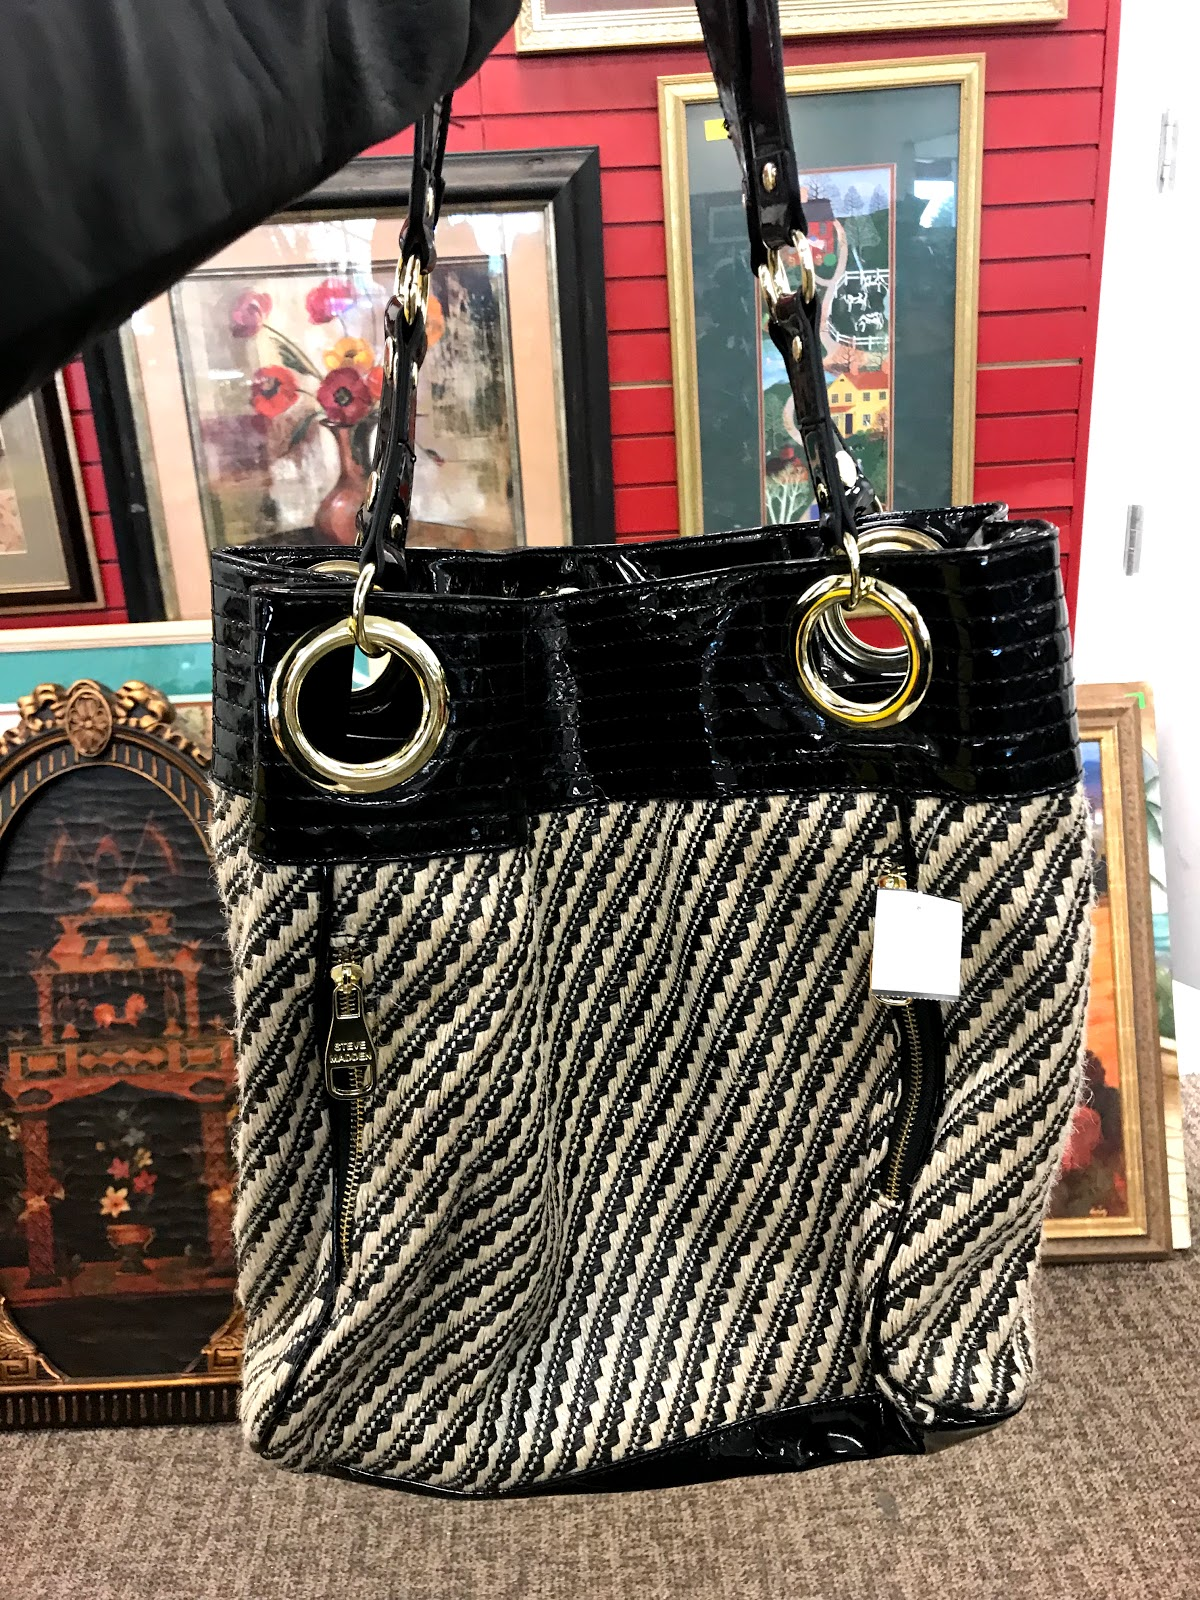 Handbag at the Salvation Army Thrift Store